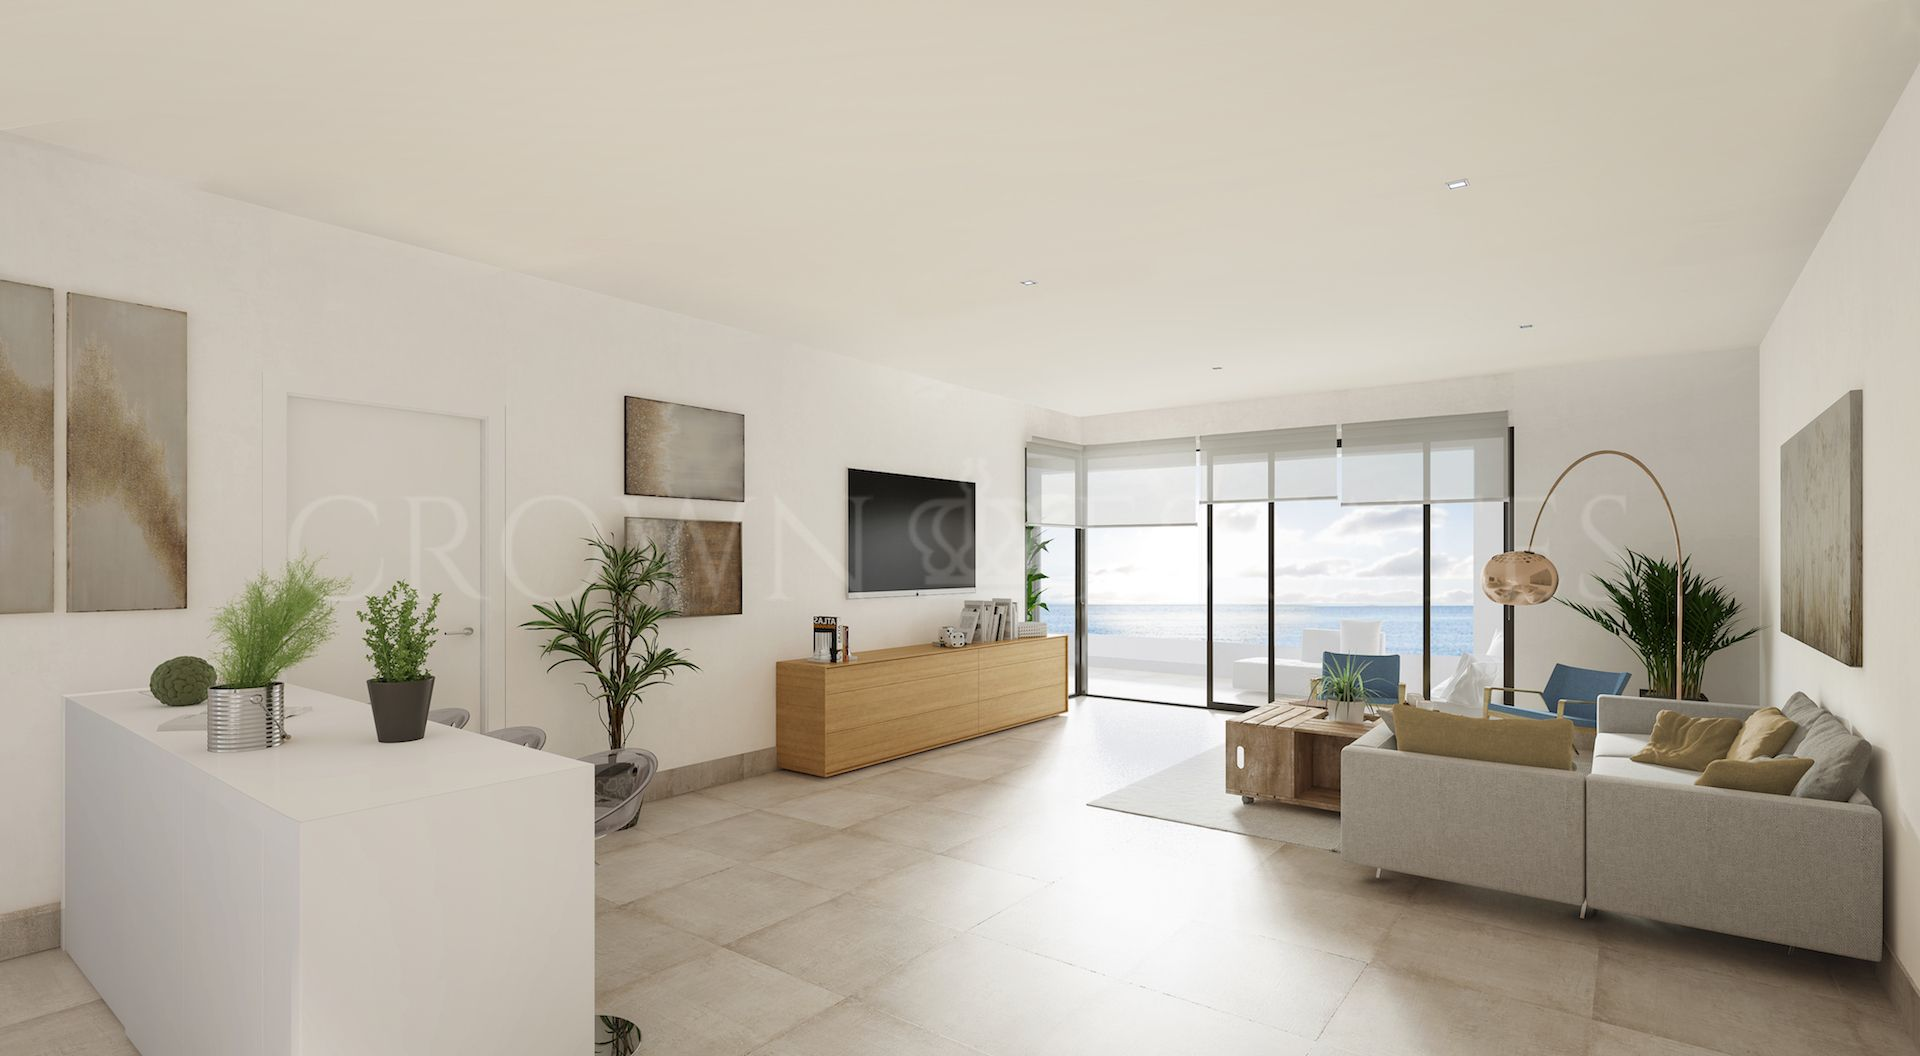 Middle Views II, spacious homes with stunning views in Fuengirola